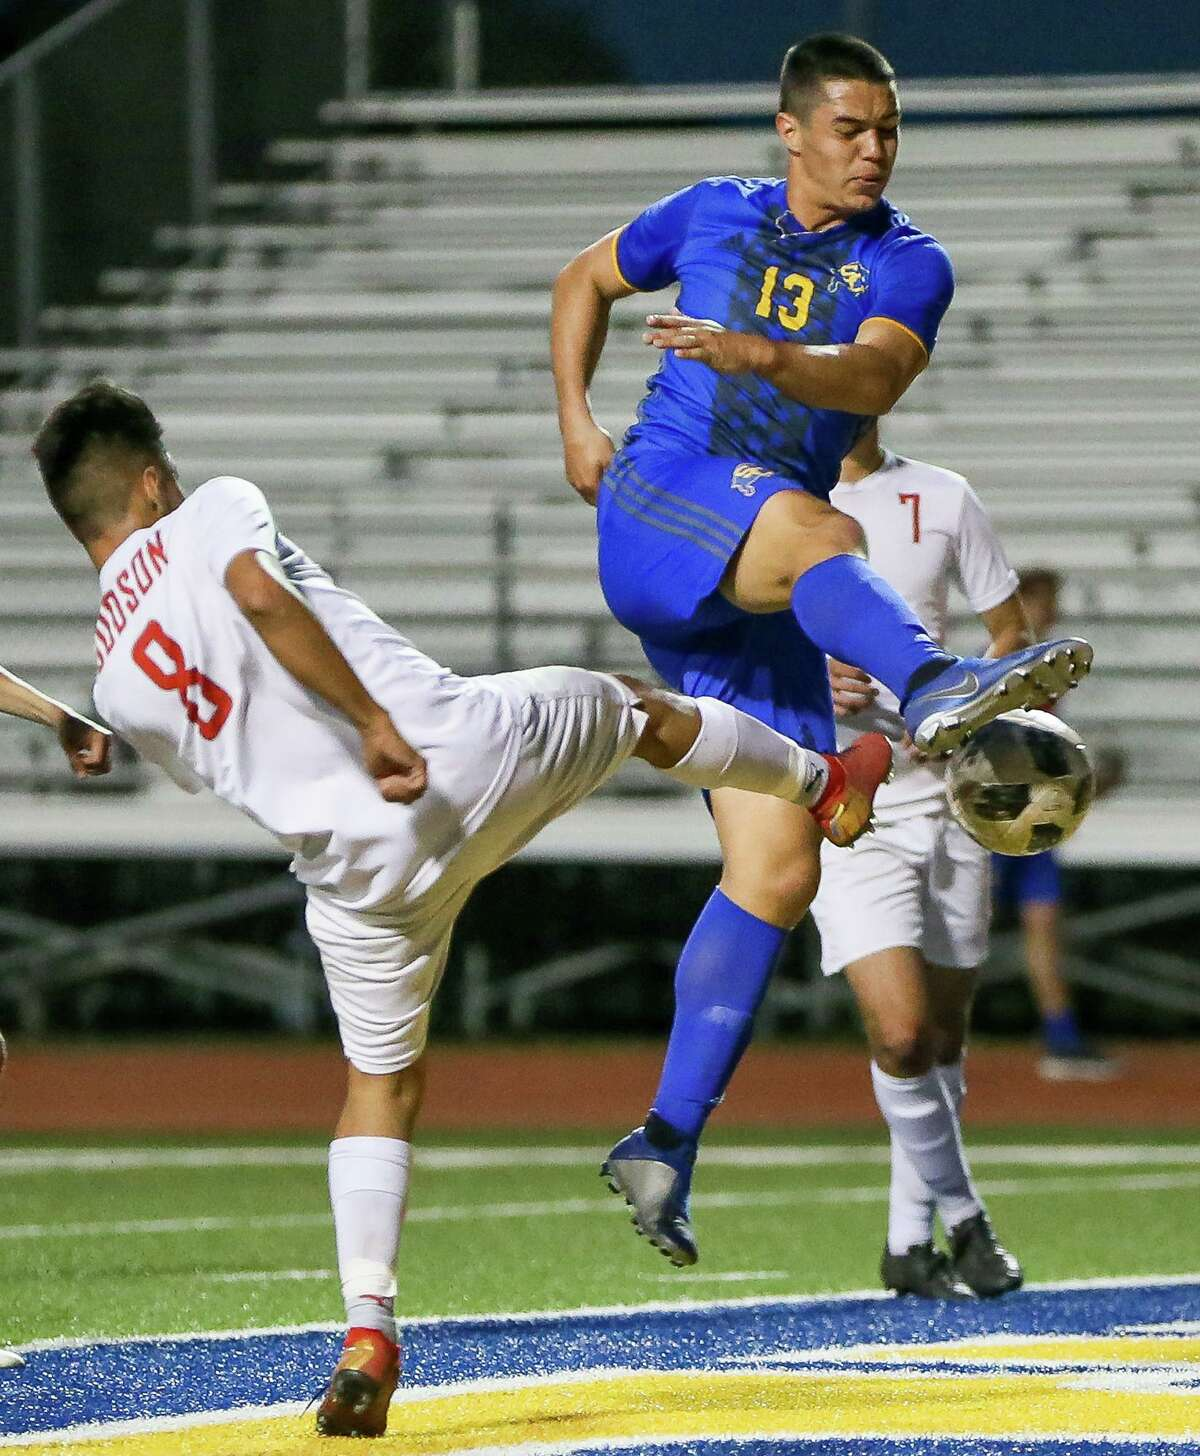 Judson's Alan Baez, left, tries to prevent Clemens' Jackson Macias from taking a shot at the goal during the first half of their District 26-6A boys soccer game at Lehnhoff Stadium on March 22, 2019.